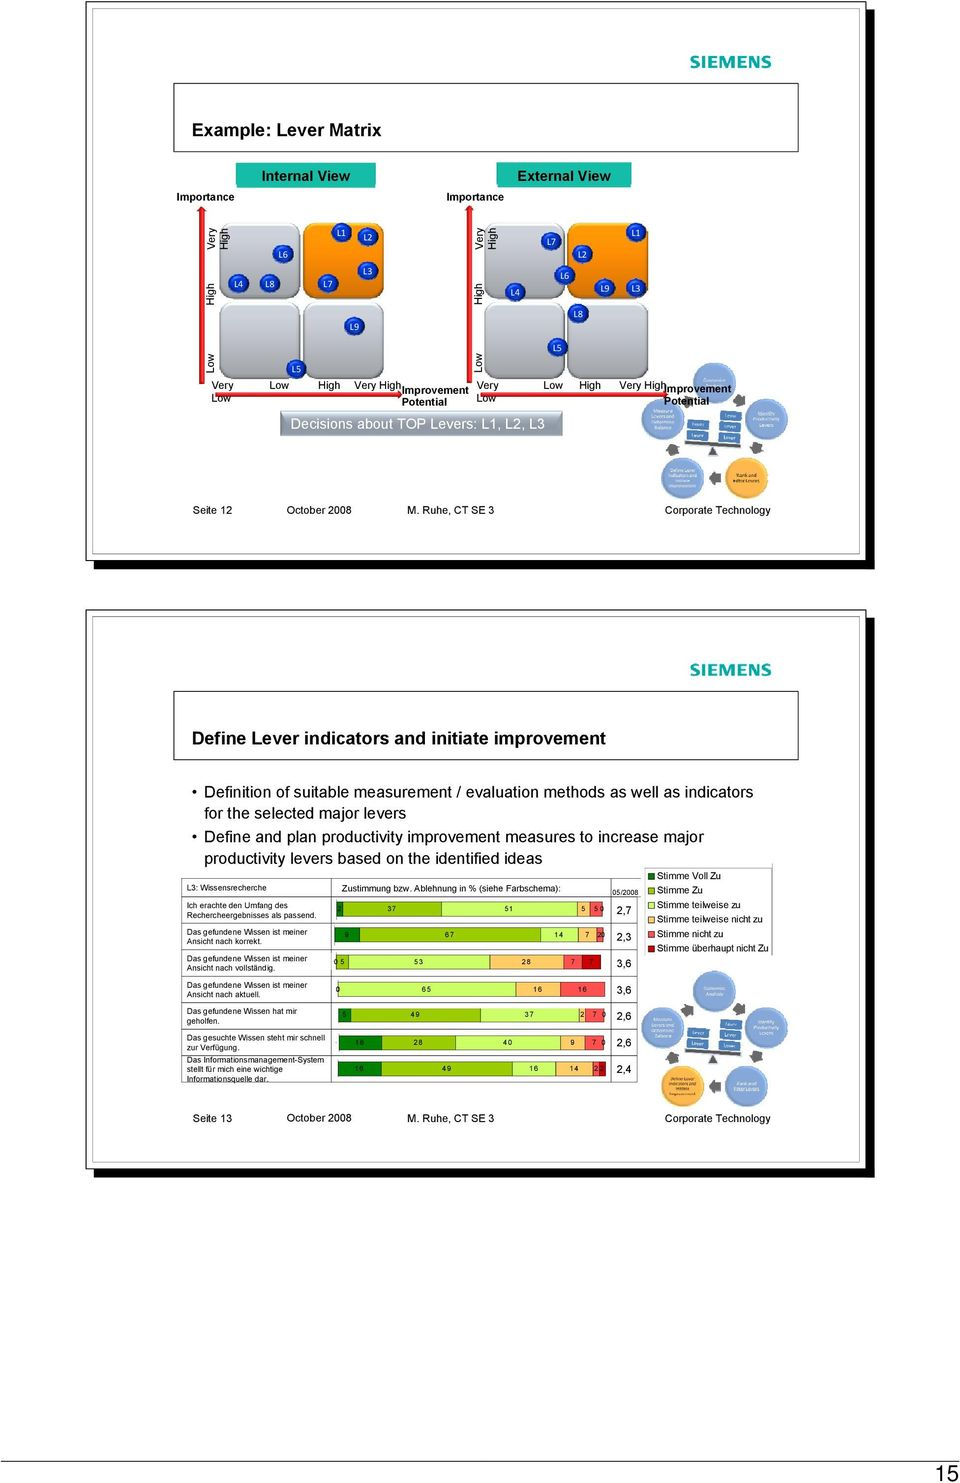 Potential Importance Very Low Decisions about TOP Levers: L1, L2, L3 Very HighImprovement Potential Seite 12 October 2008 M.